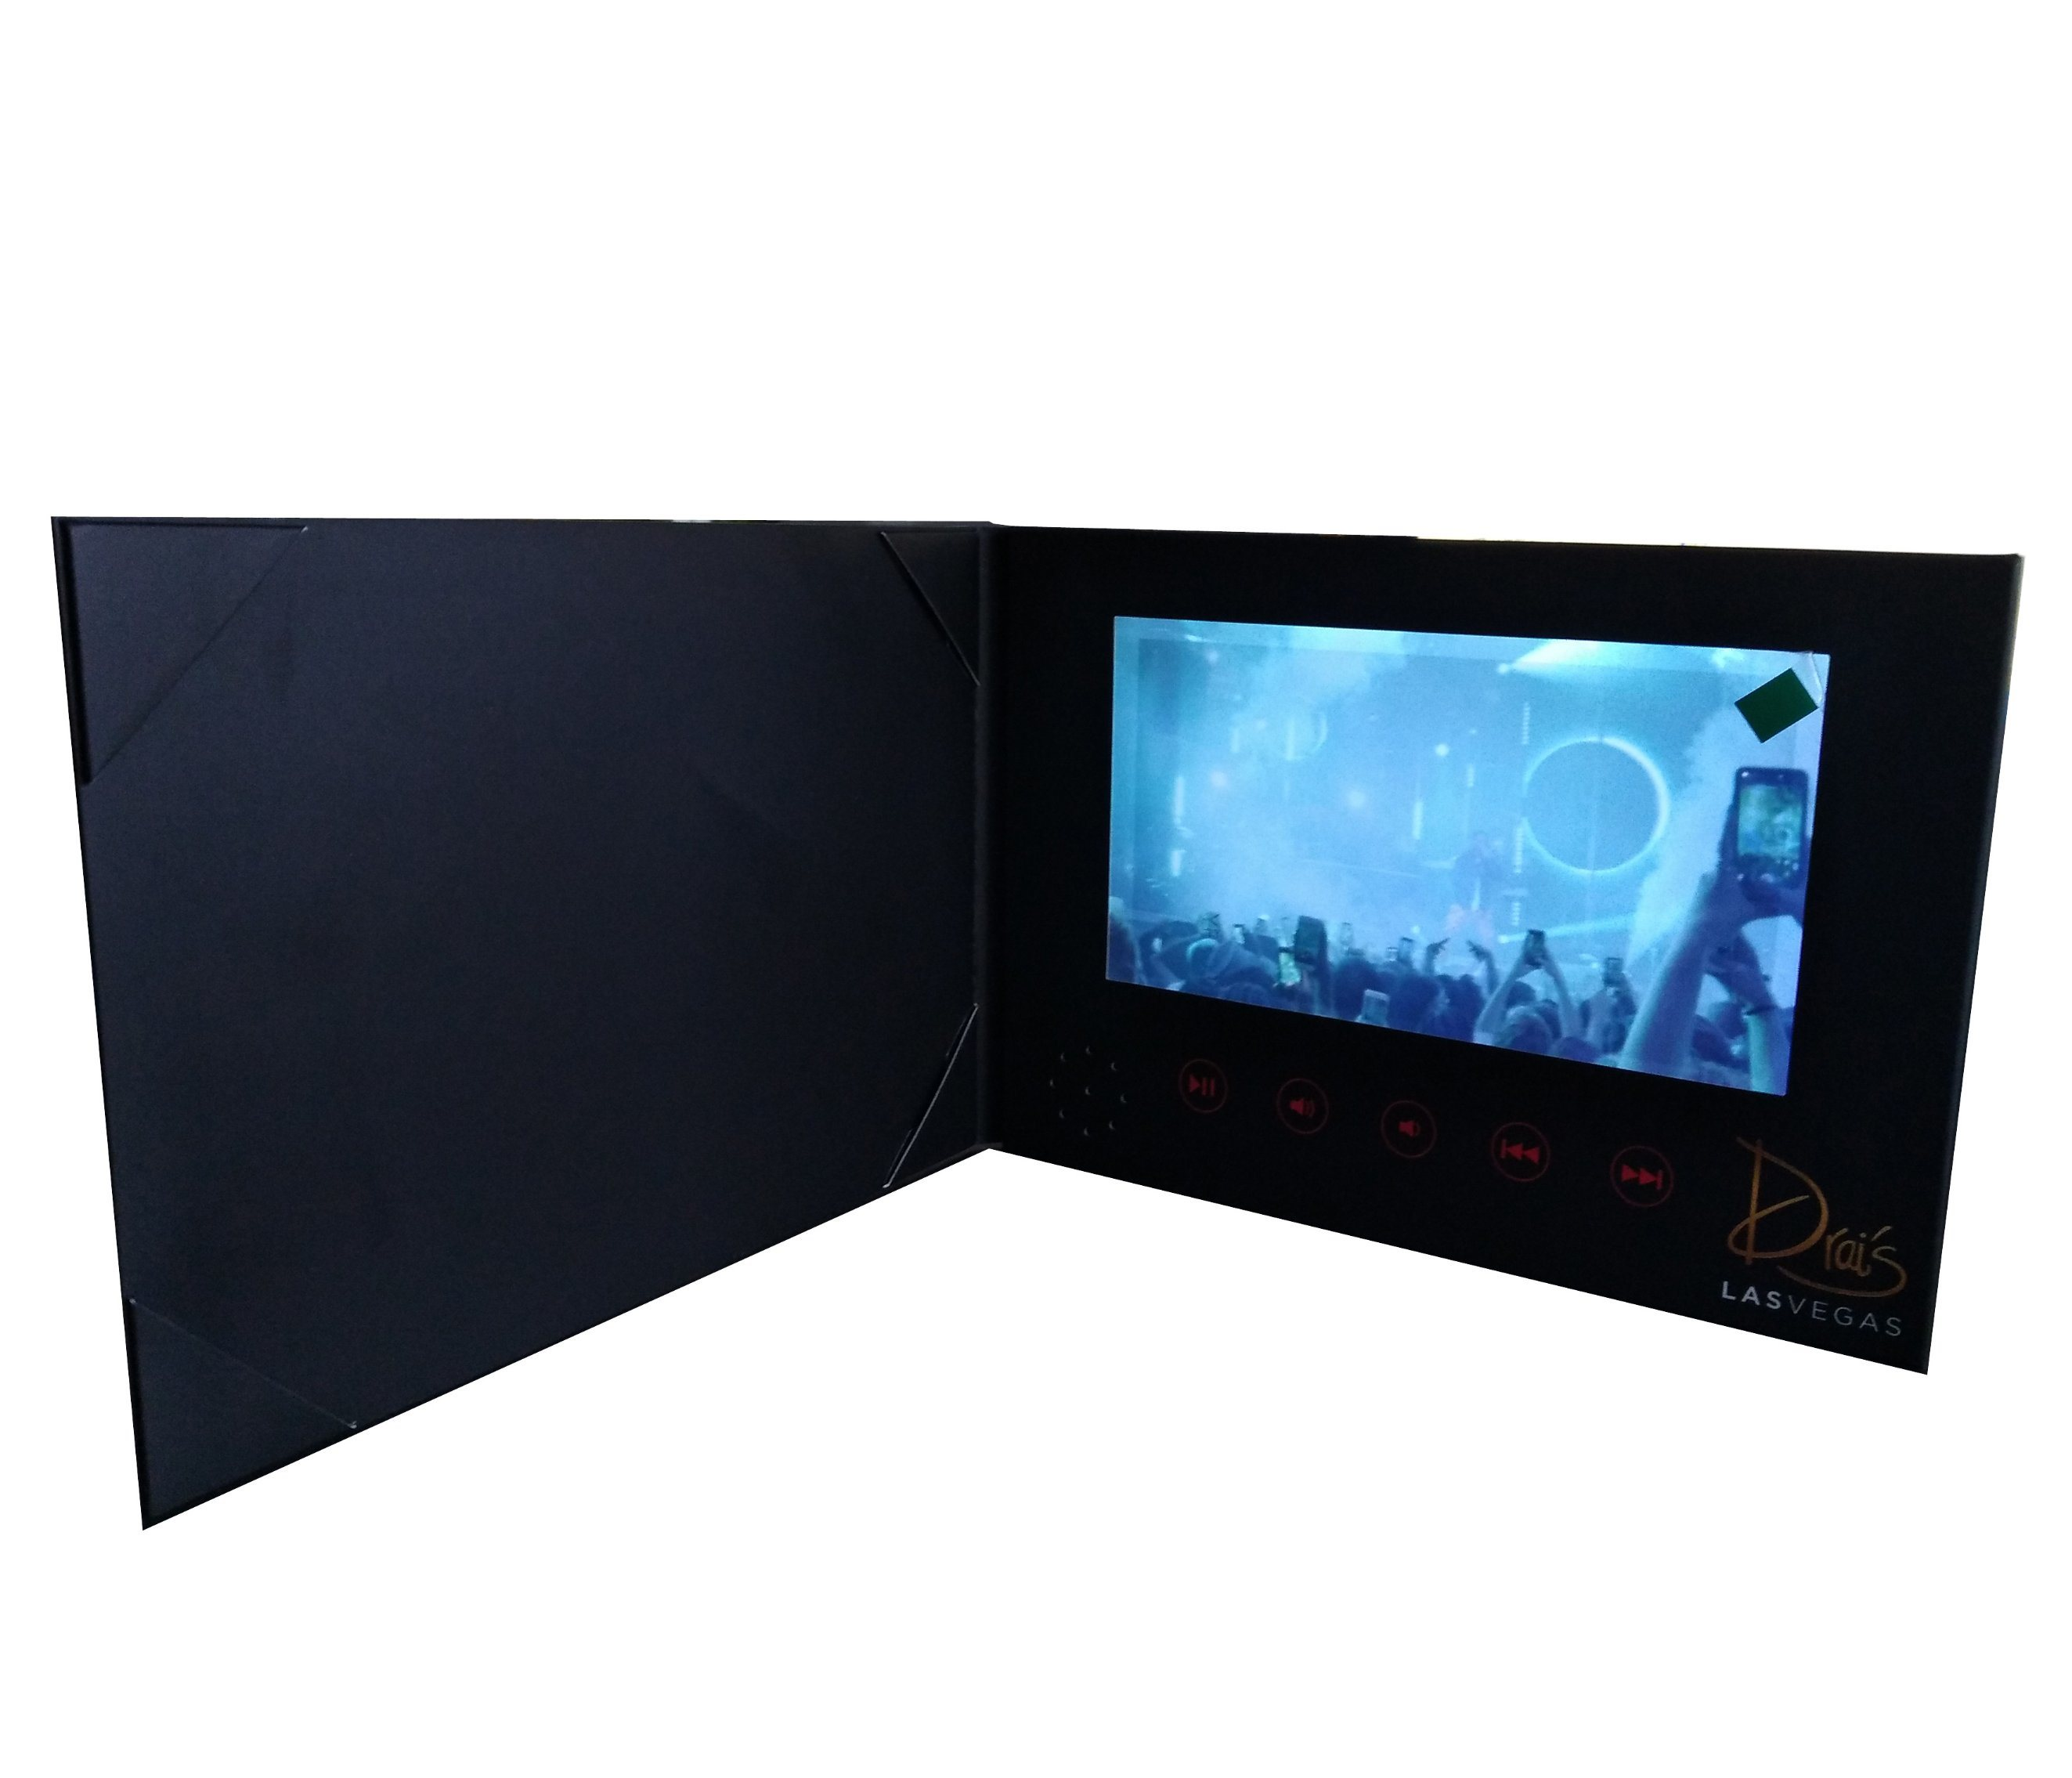 China custom lcd screen video business cards china video business china custom lcd screen video business cards china video business card business card reheart Image collections